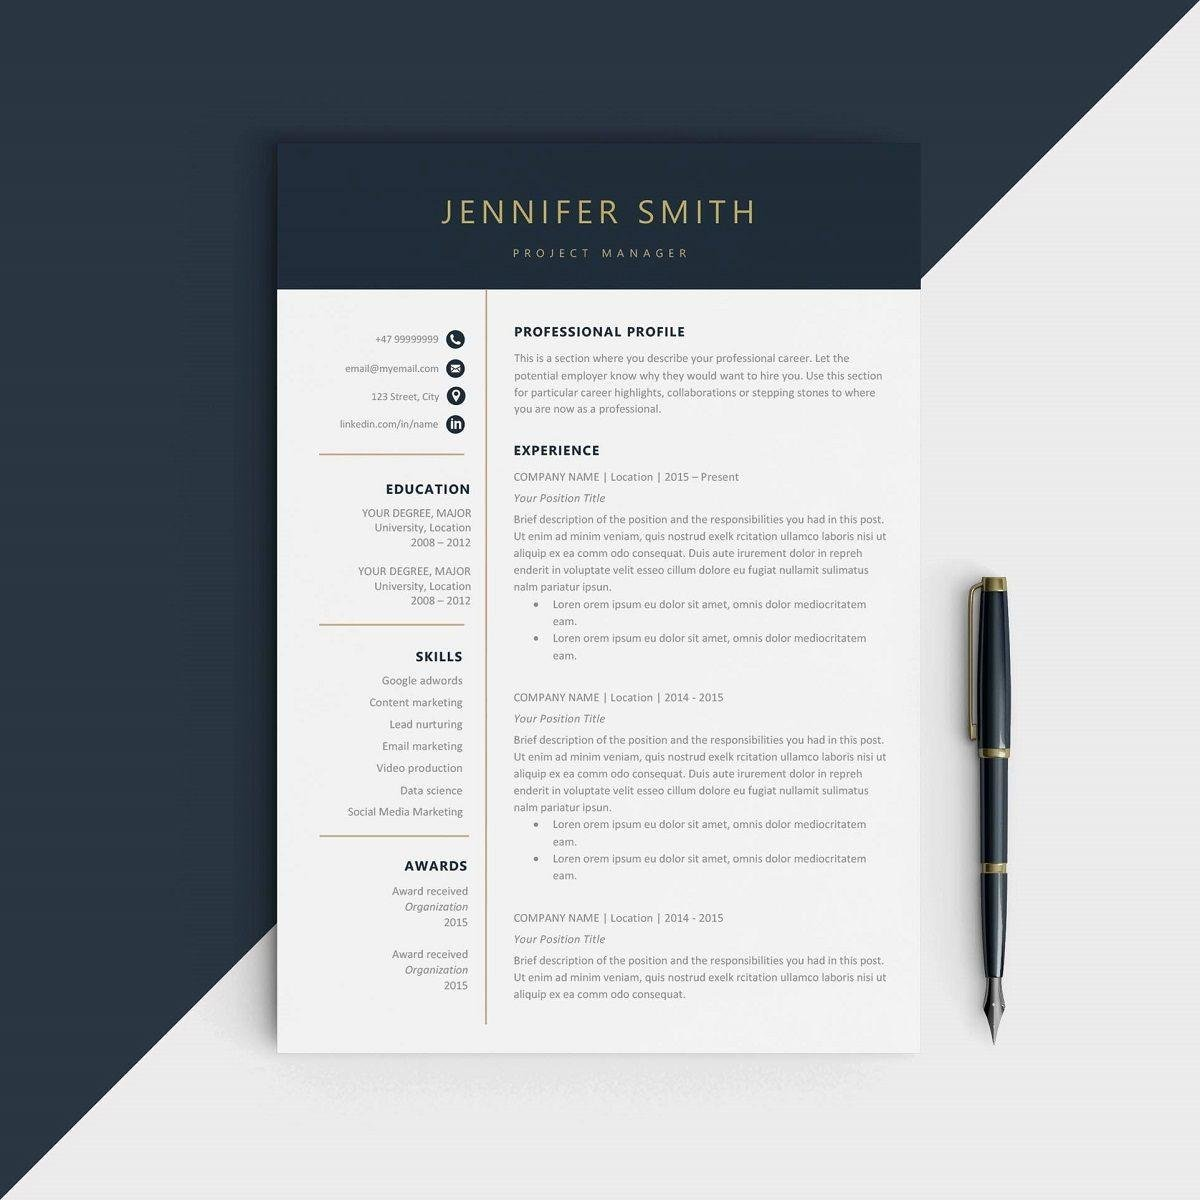 Modern resume templates 18 examples a complete guide for Reusme templates